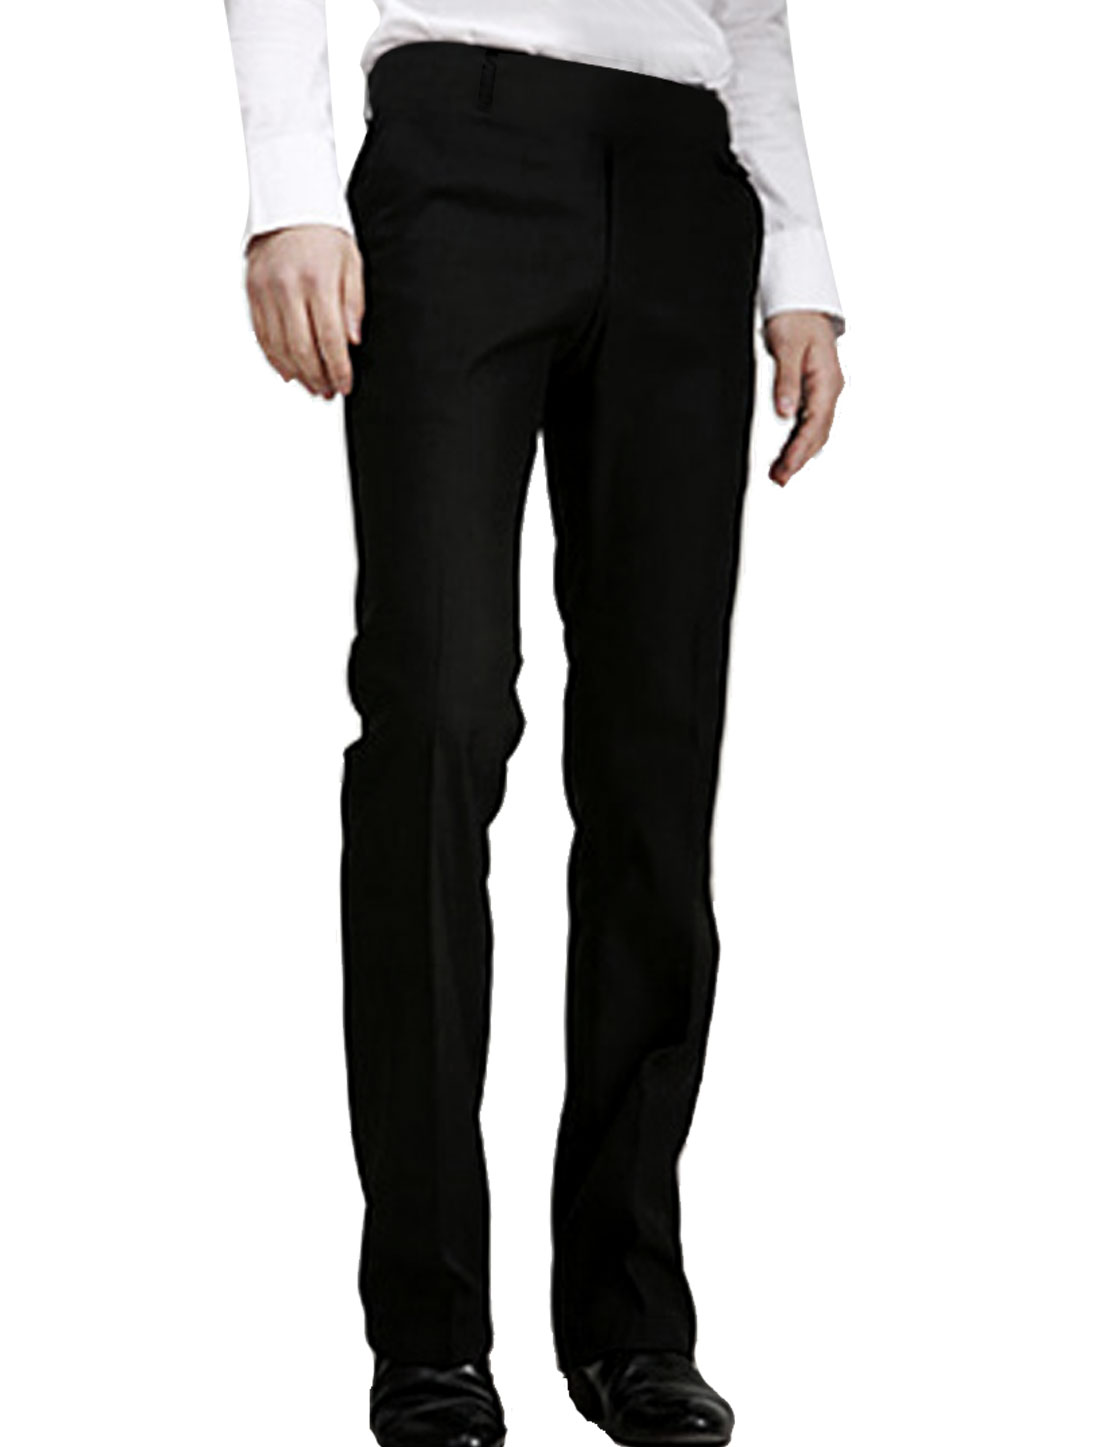 Unique Bargains Mens Casual Slim Fit Dress Pants Trousers Black W30 NEW at Sears.com